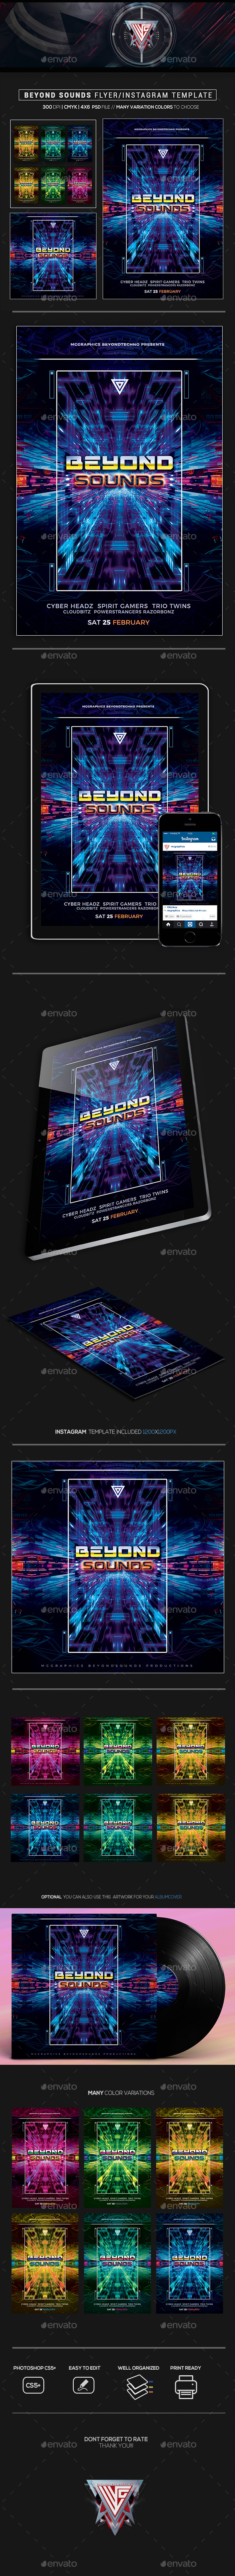 Beyond Sounds Flyer/Instagram Template - Events Flyers